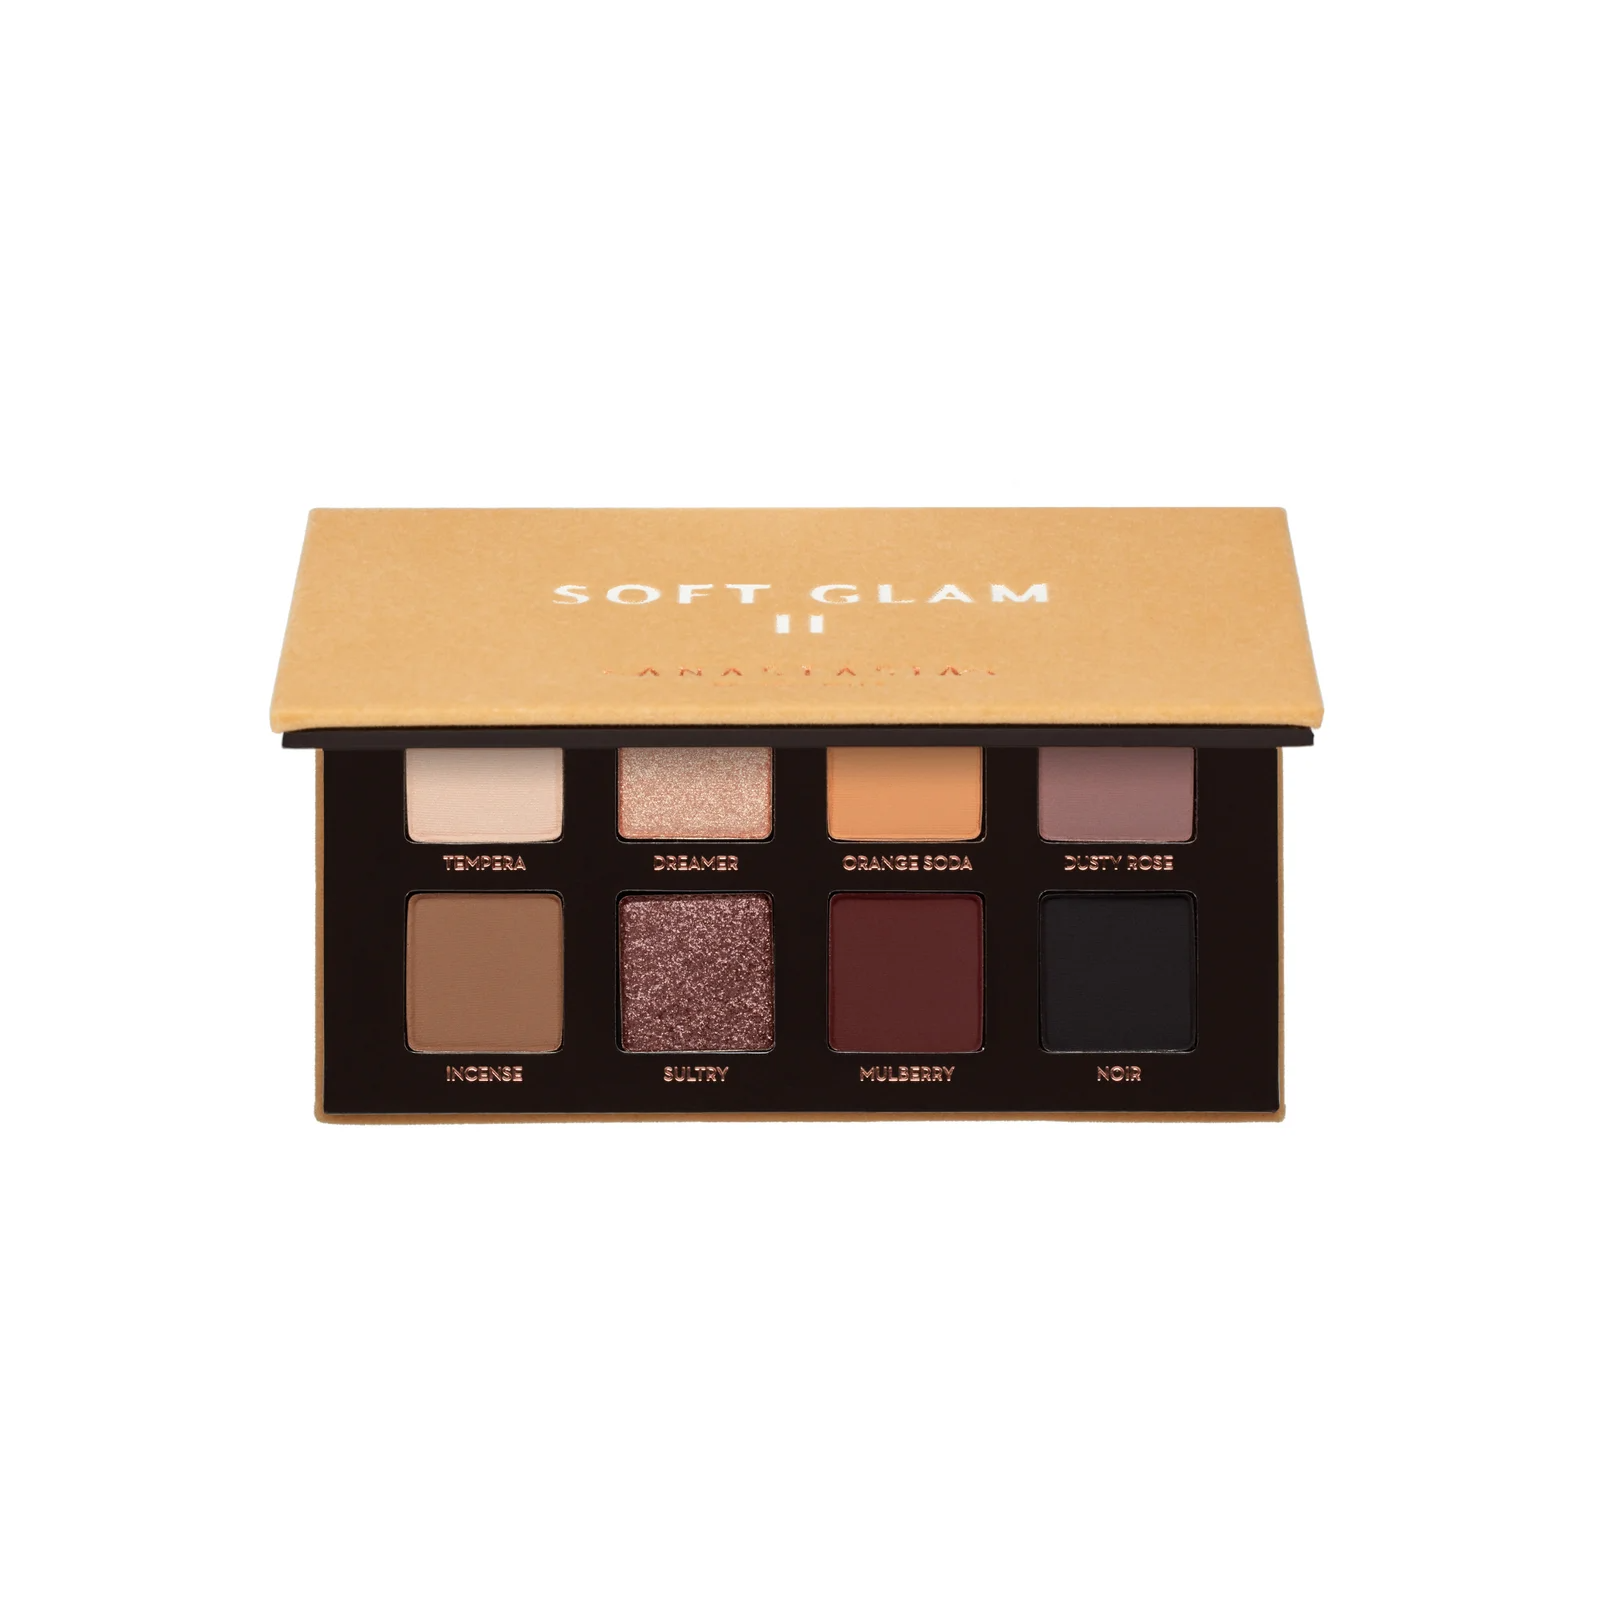 ANASTASIA BEVERLY HILLS Soft Glam II Mini Eyeshadow Palette, eyeshadow palette, London Loves Beauty